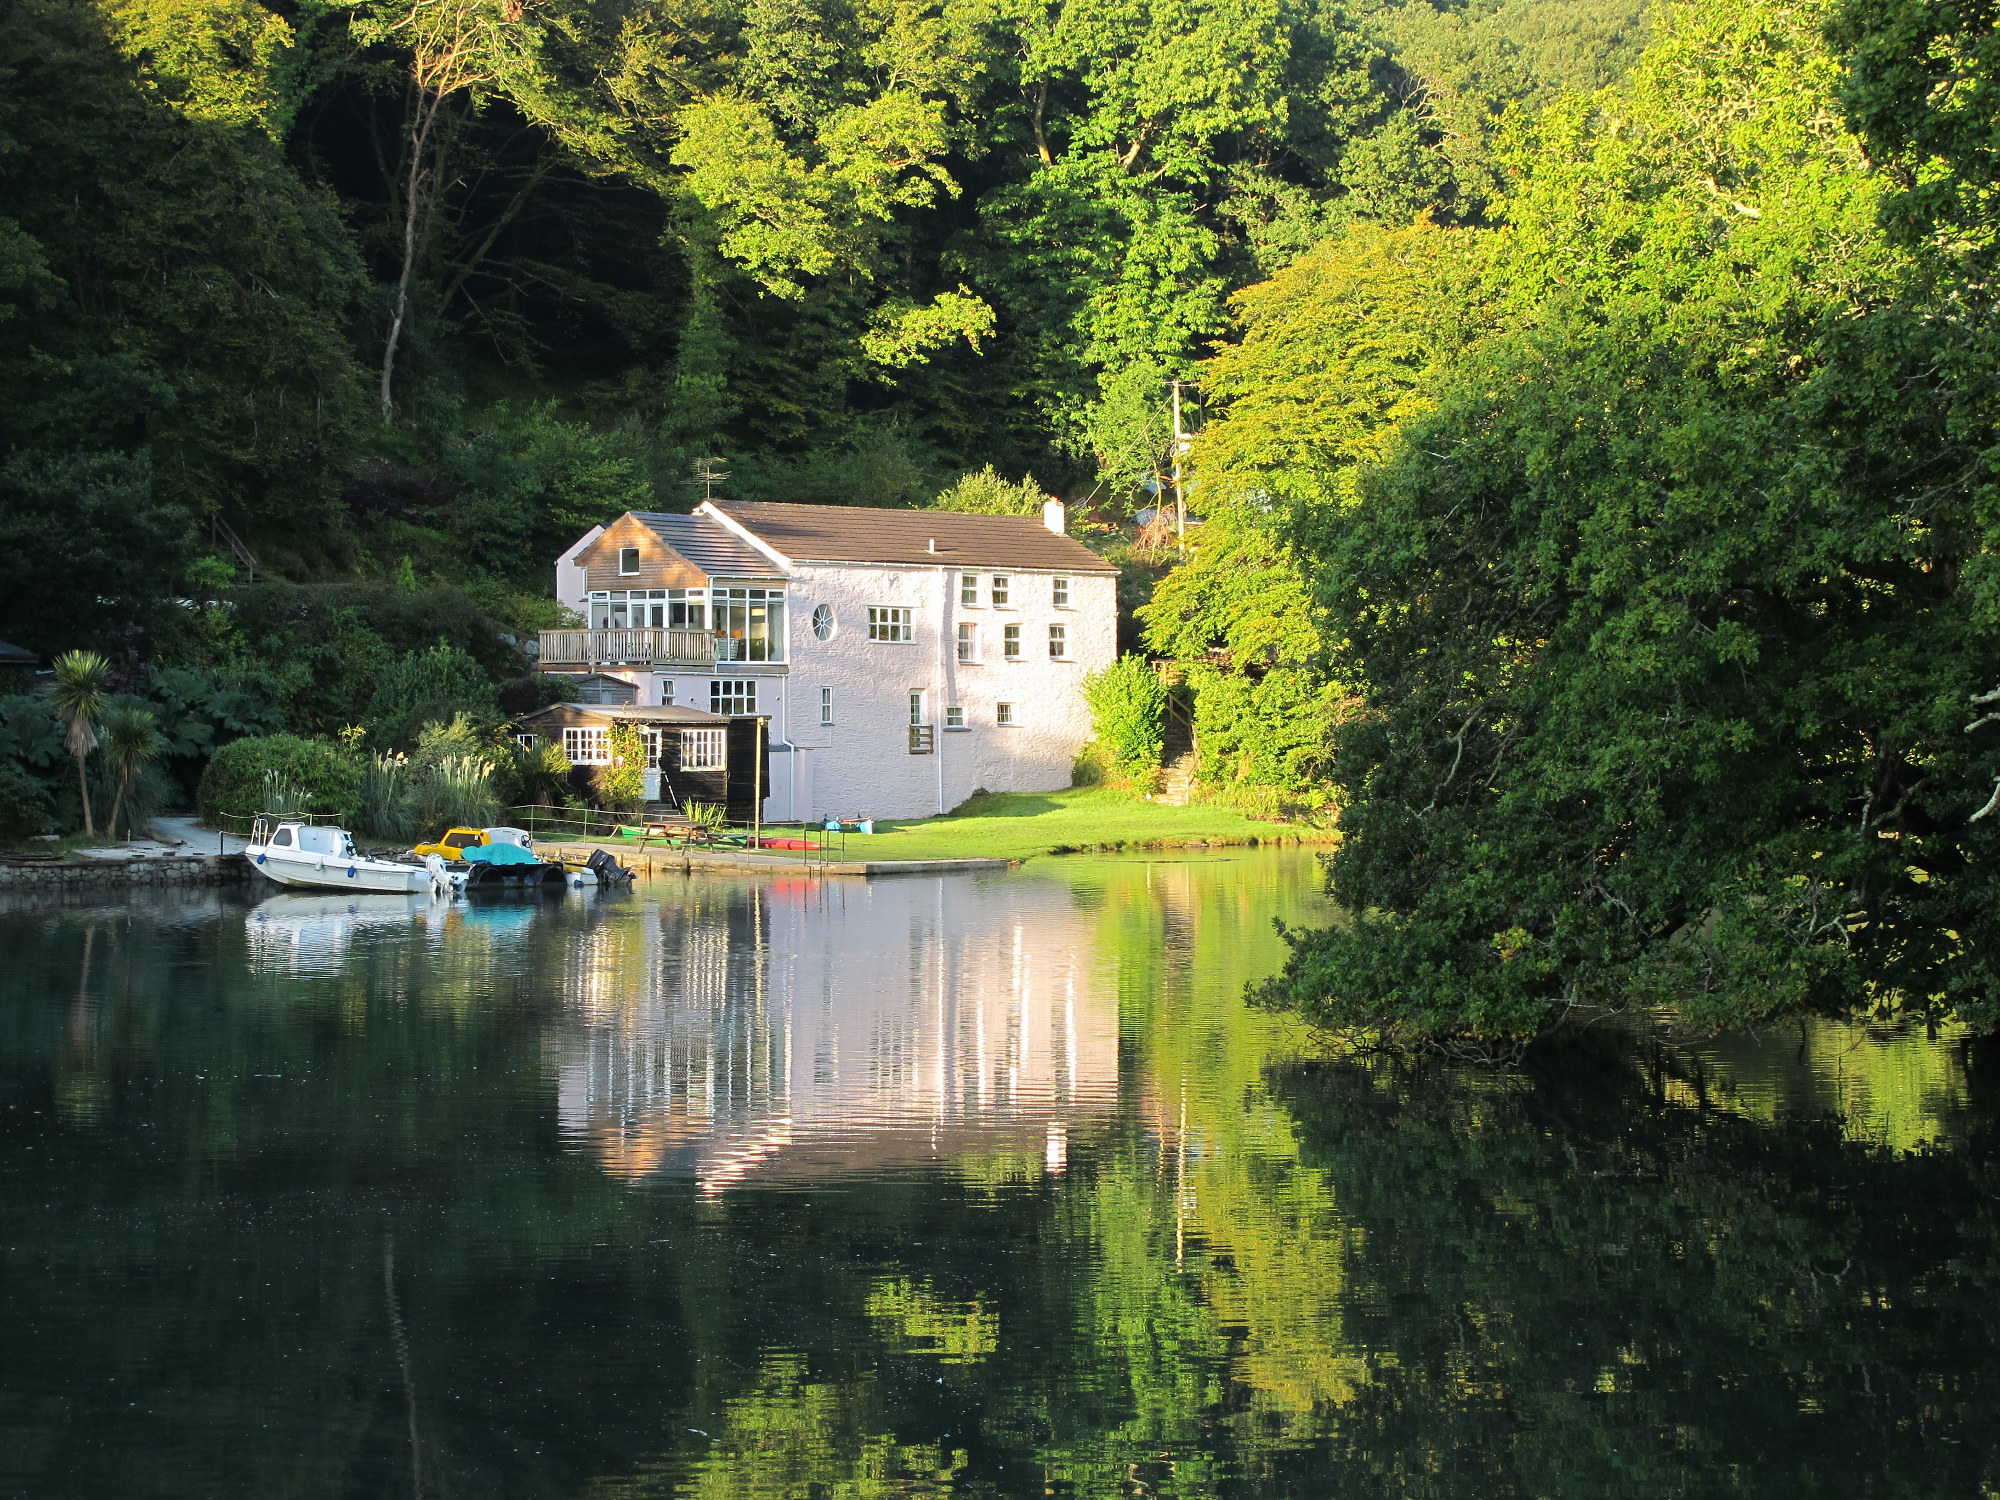 The Sawmills sits on the banks of The Fowey in Cornwall.